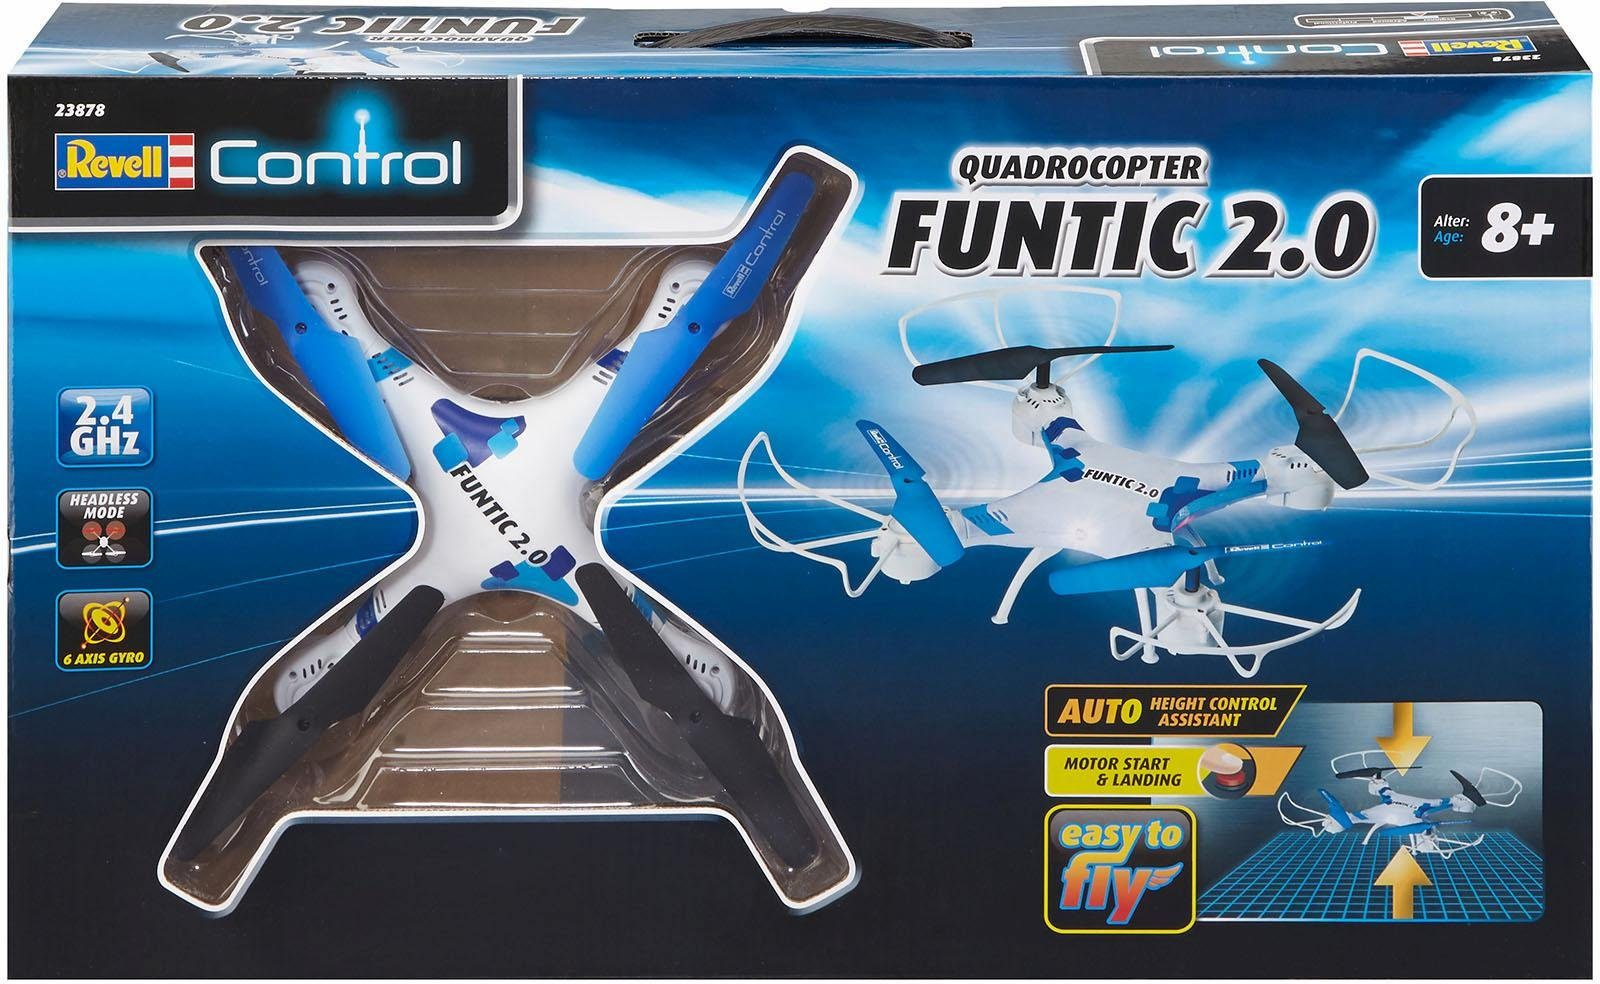 Revell RC Quadrocopter, »Revell control, Funtic 2.0, 2,4 GHz« - broschei